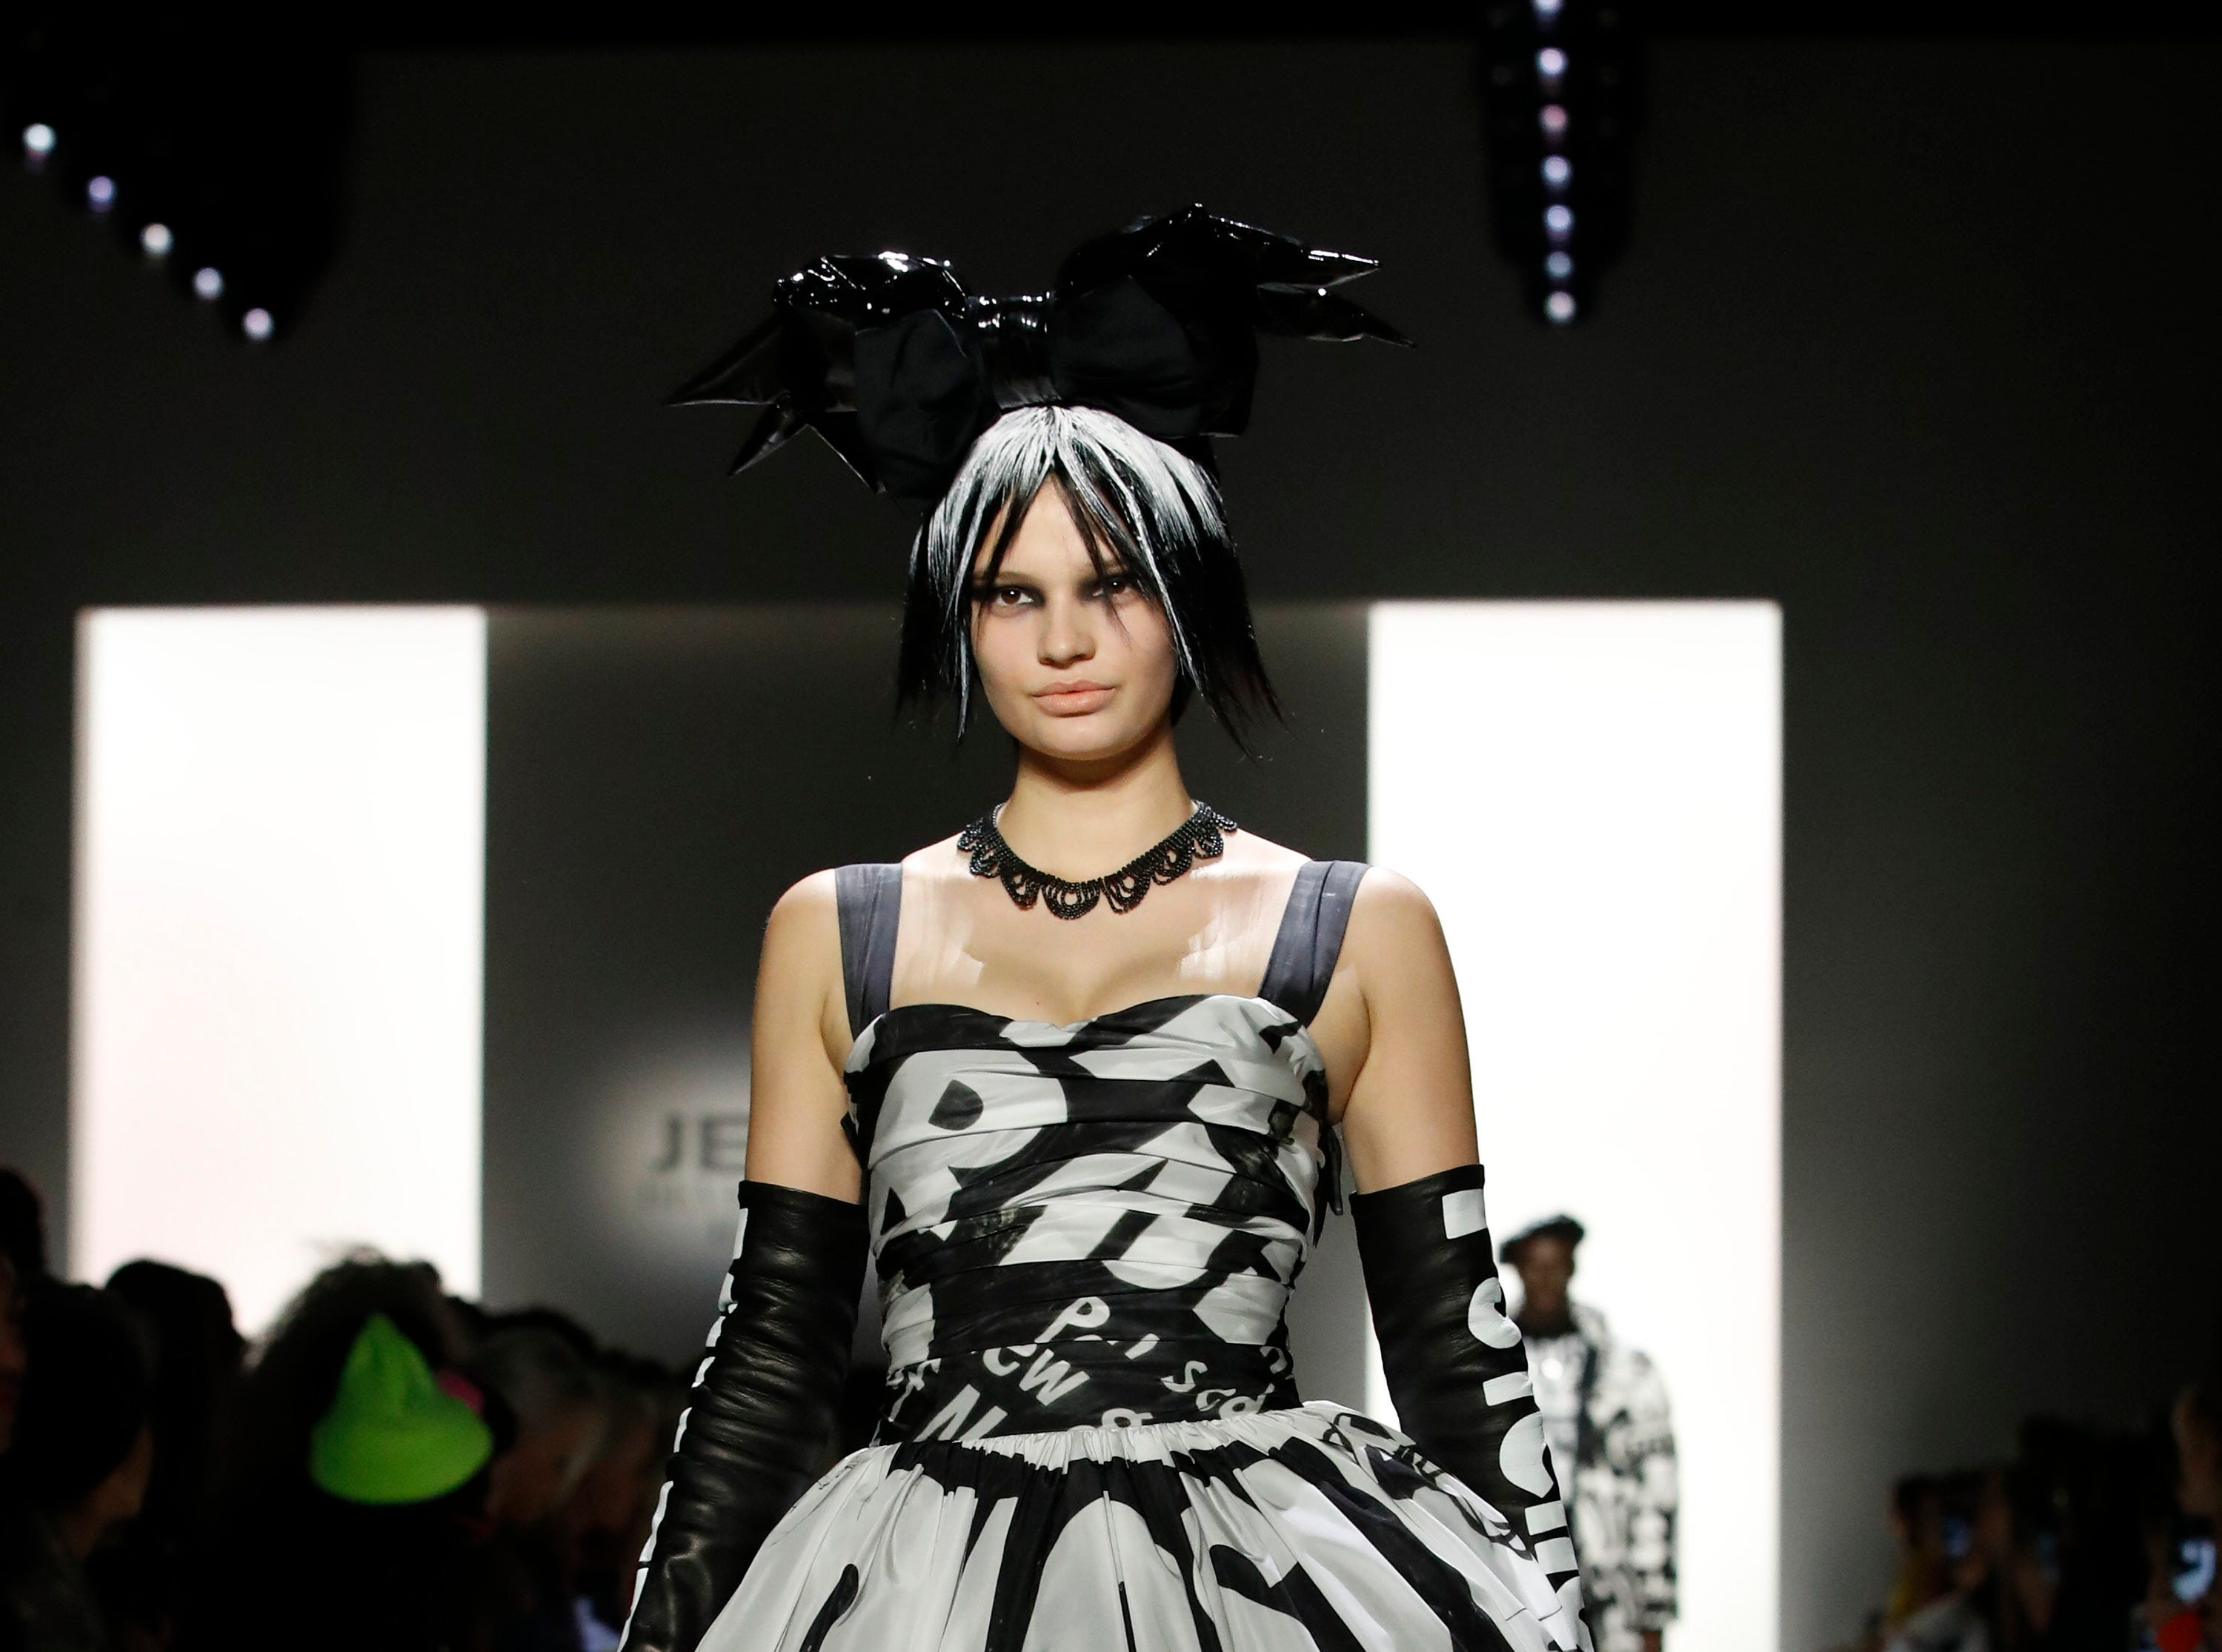 epa07354241 A model walks down the runway to present a creation by Jeremy Scott during New York Fashion Week in New York, New York, USA, 08 February 2019. New York Fashion Week for designer's autumn and winter lines is being held from 06 to 13 February 2019.  EPA-EFE/JASON SZENES ORG XMIT: JSX09